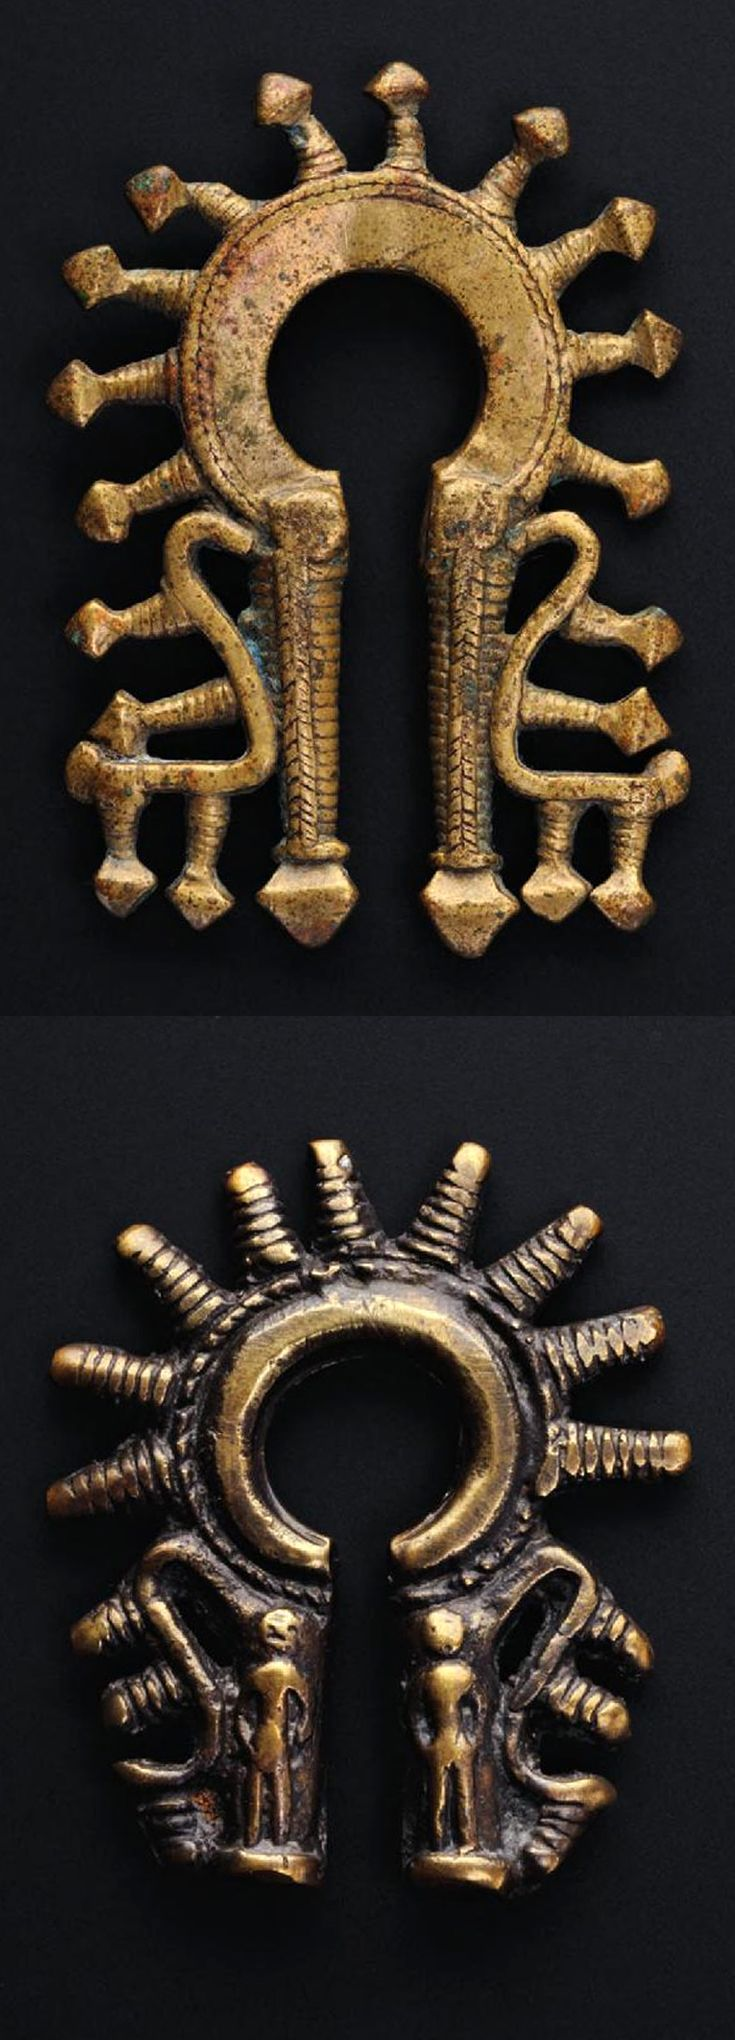 Indonesia ~ Batak Toba   Omega form earrings ~ 'duri-duri'   Brass (left), Bronze (right)   Usually worn as a single earring but sometimes in pairs, they are the only gold and silver jewellery made by the Batak Toba, who traditionally prefer copper alloys.     Source; Ethnic Jewellery from Indonesia: Continuity and Evolution. Bruce W Carpenter. Pg 64